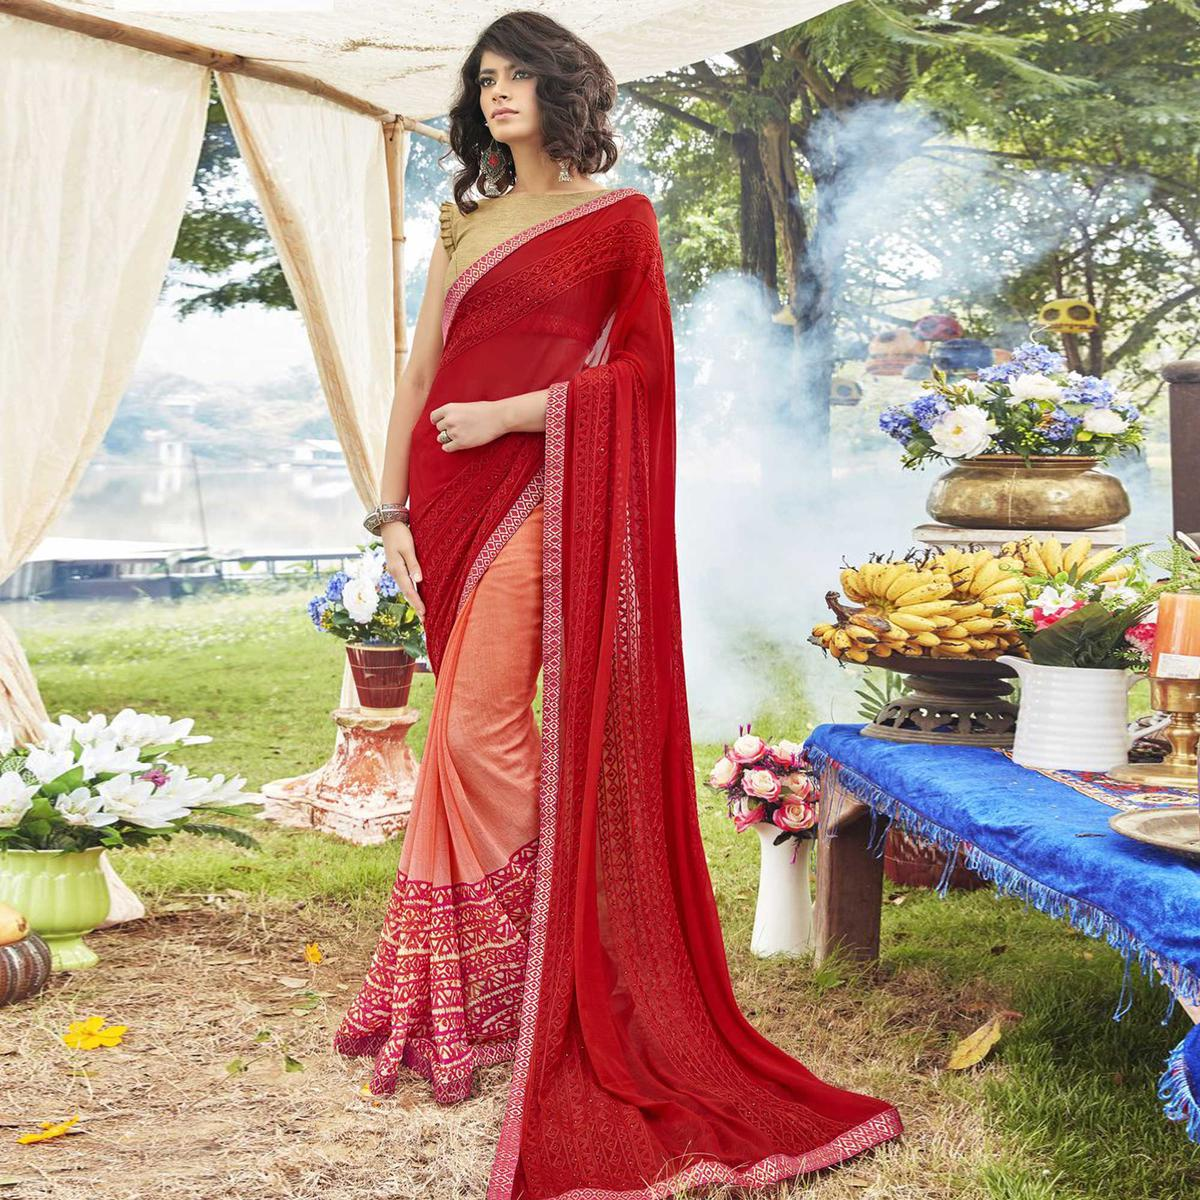 Eye-Catching Orange-Red Colored Partywear Embroidered Faux Georgette Half-Half Saree